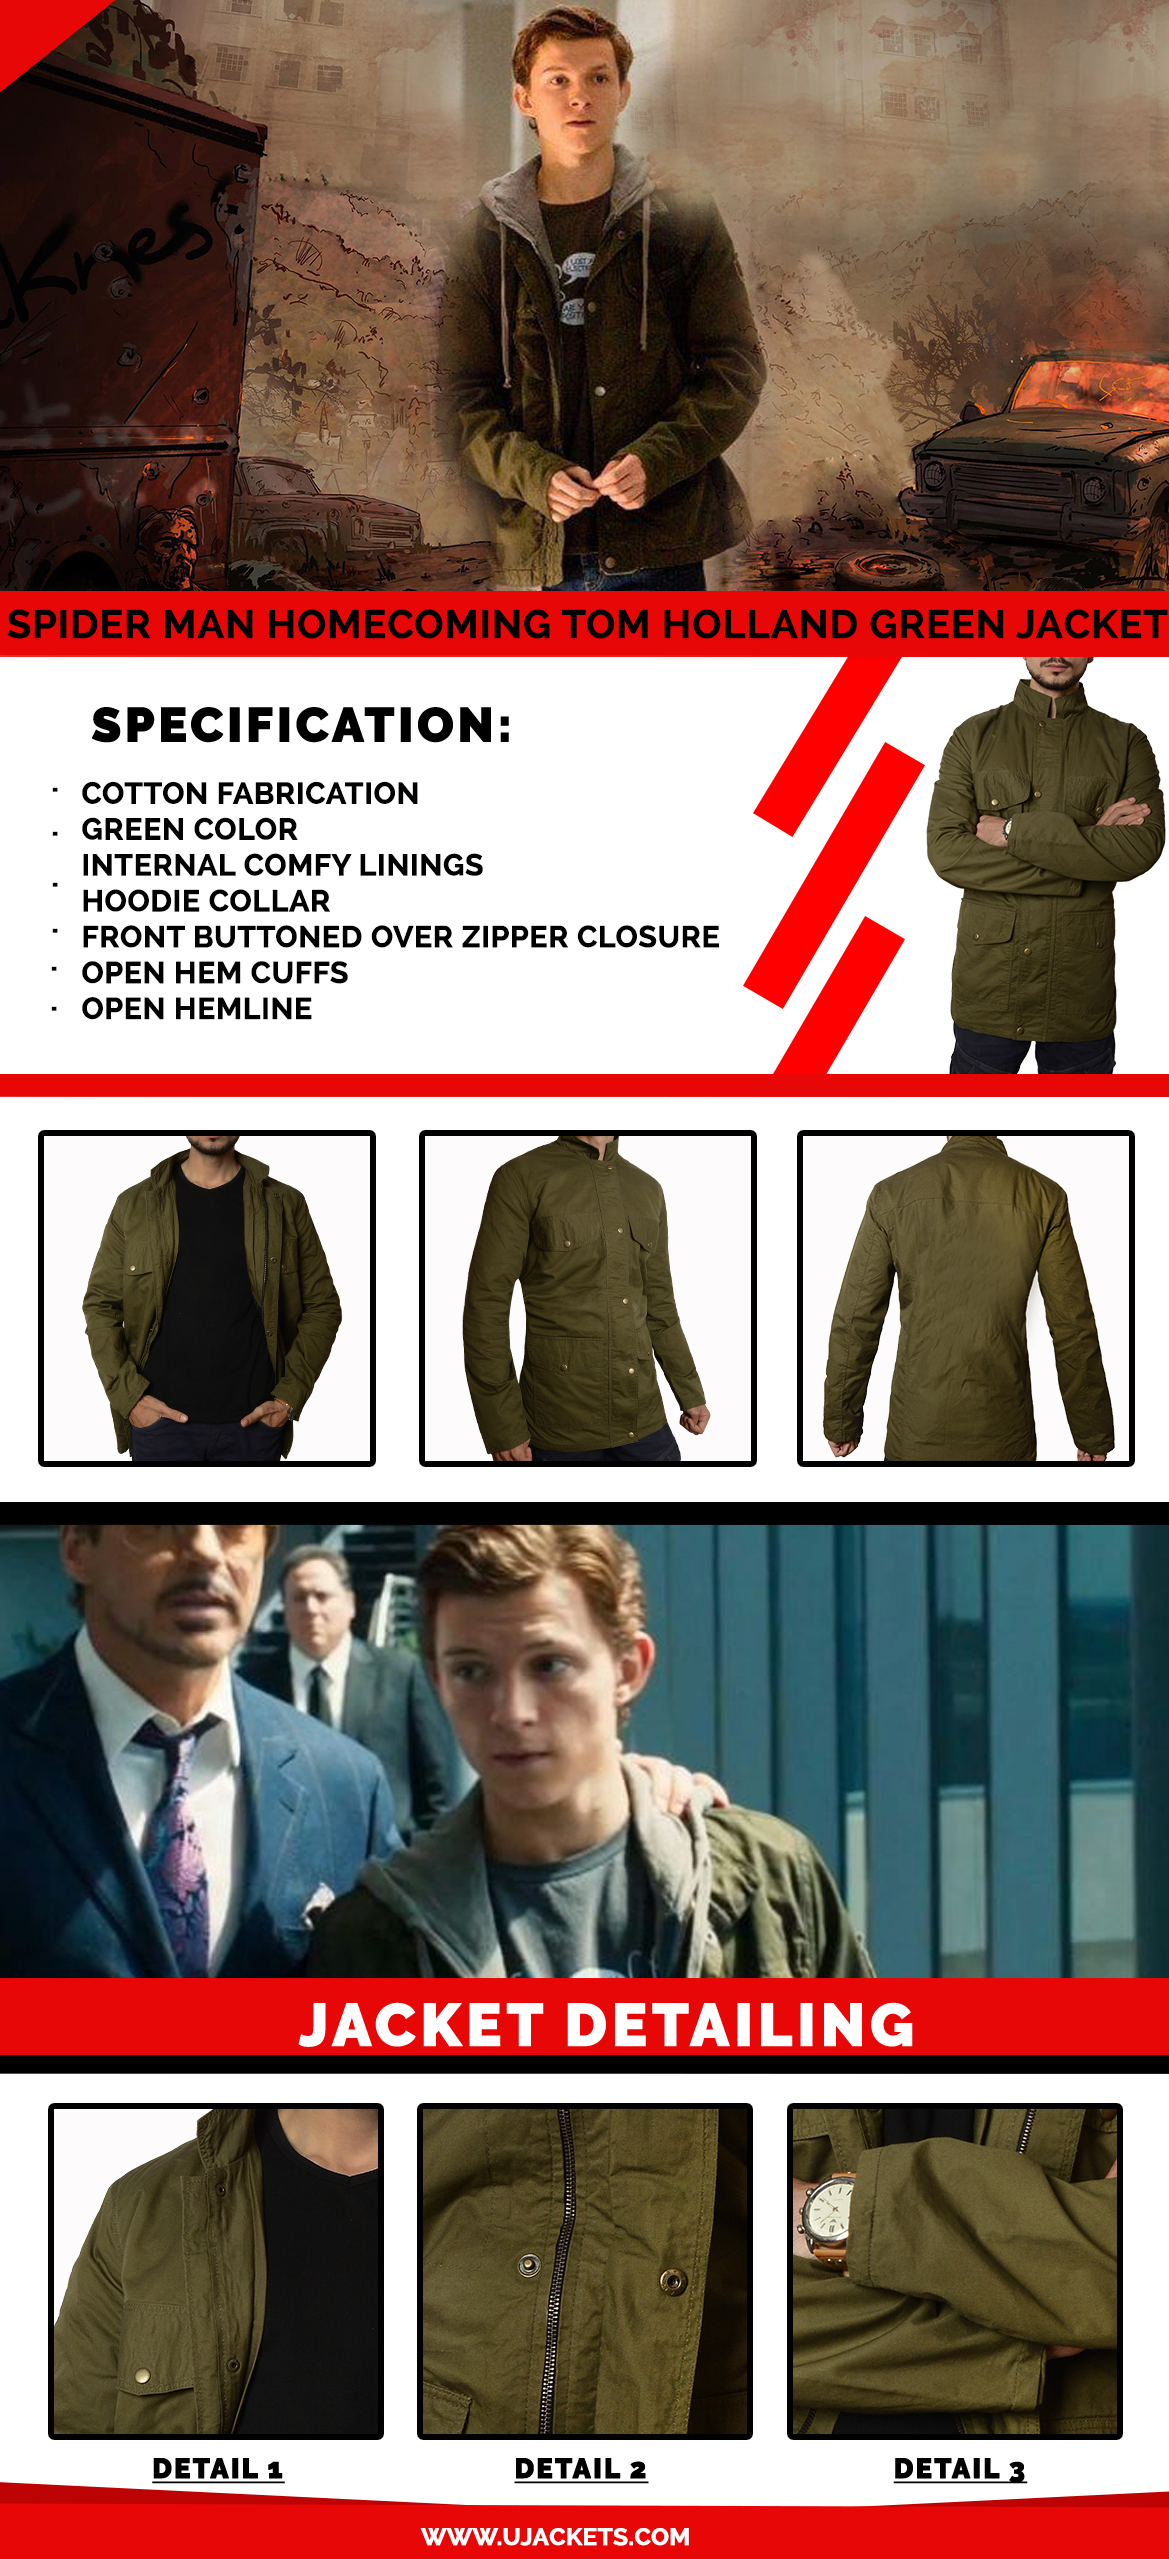 Spider-Man-Homecoming-Tom-Holland-Green-Jacket